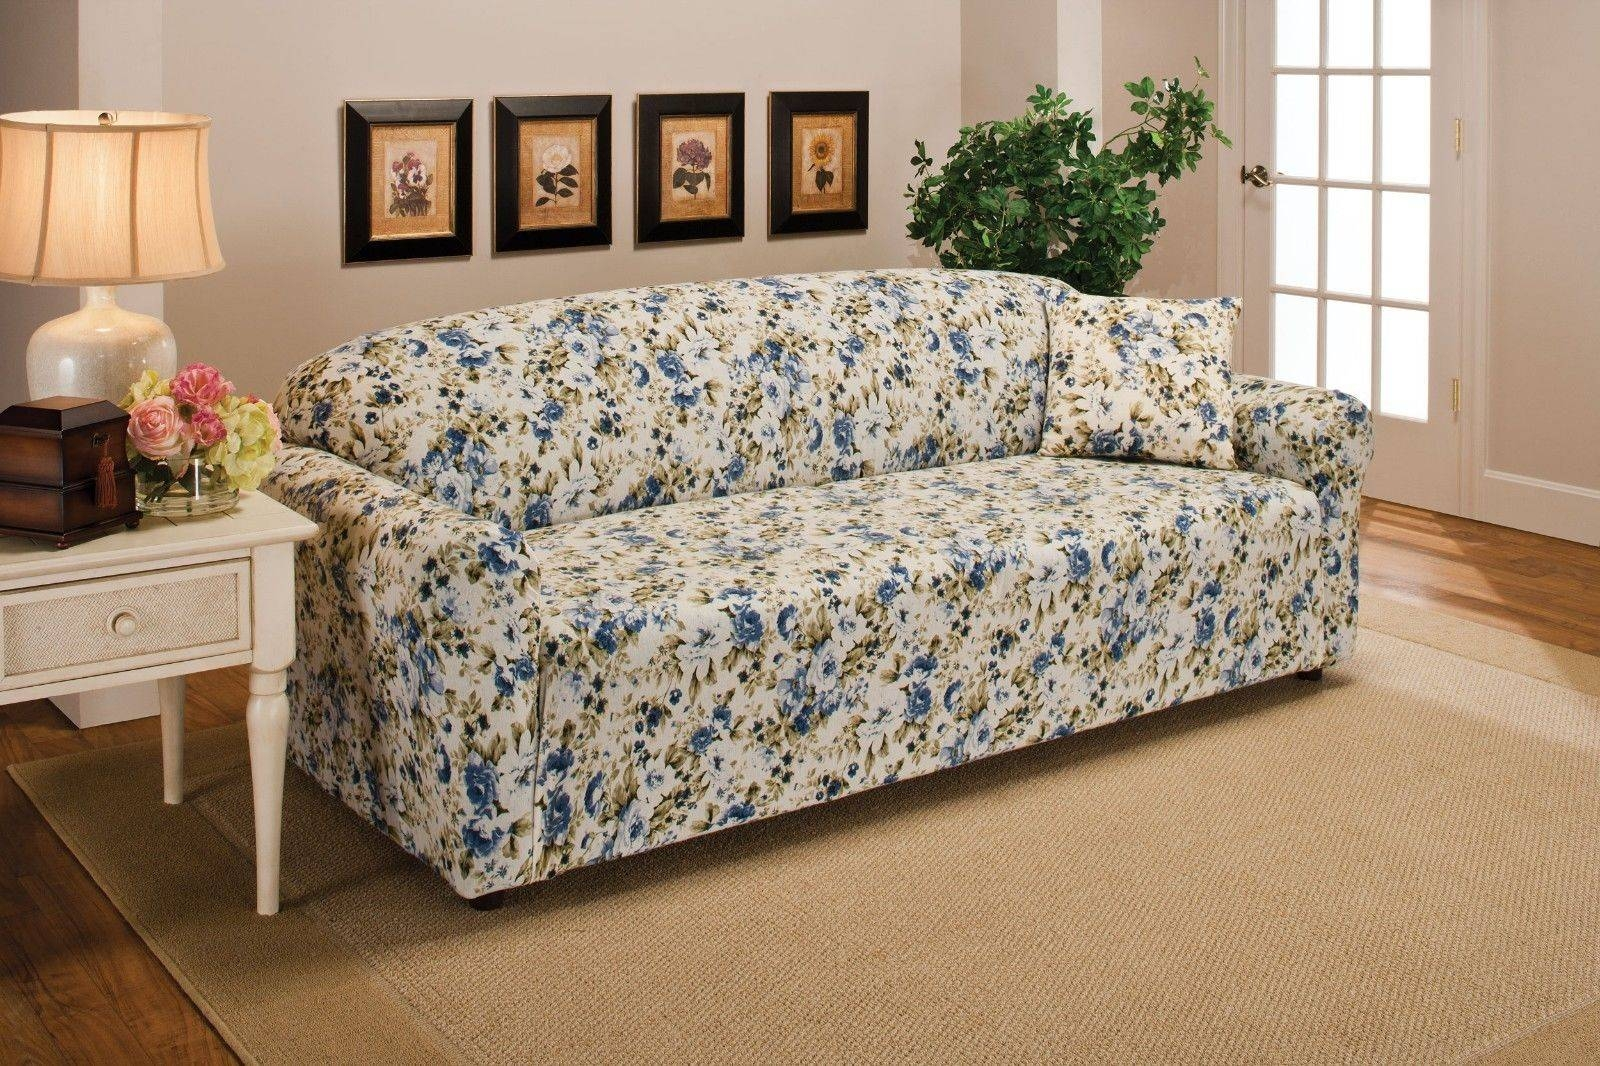 Articles With Floral Print Sofa Covers Tag: Floral Print Sofas Images. intended for Floral Slipcovers (Image 2 of 15)